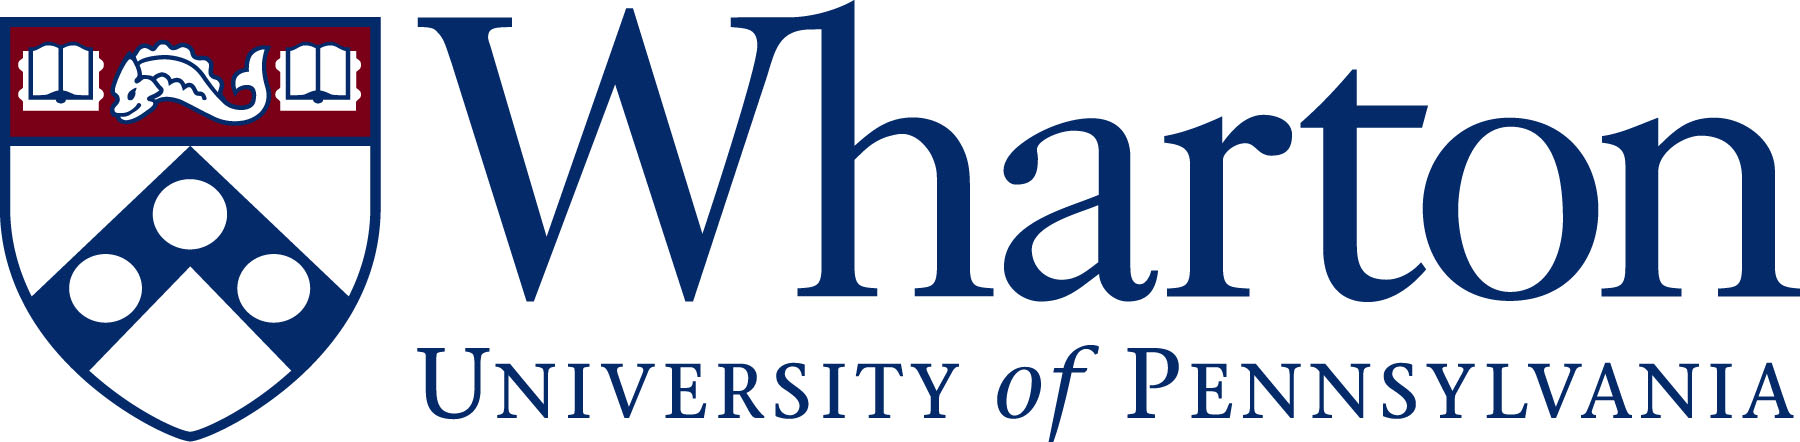 The Wharton School of the University of Pennsylvania Logo